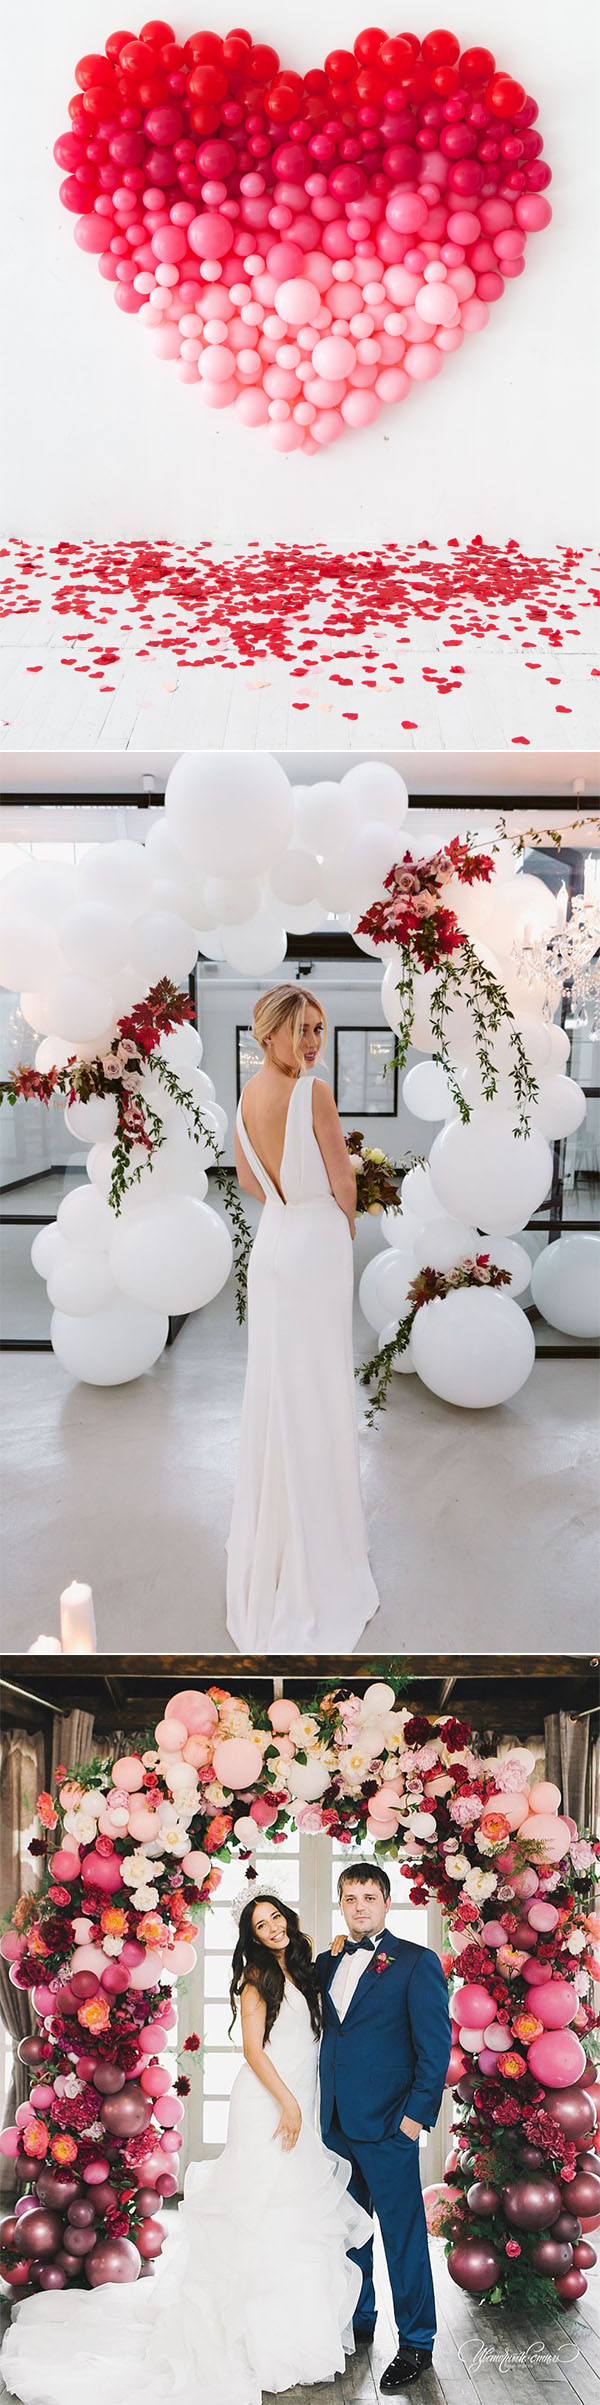 45+ Creative Fun Ways to Incorporate Balloons into Your Big Day